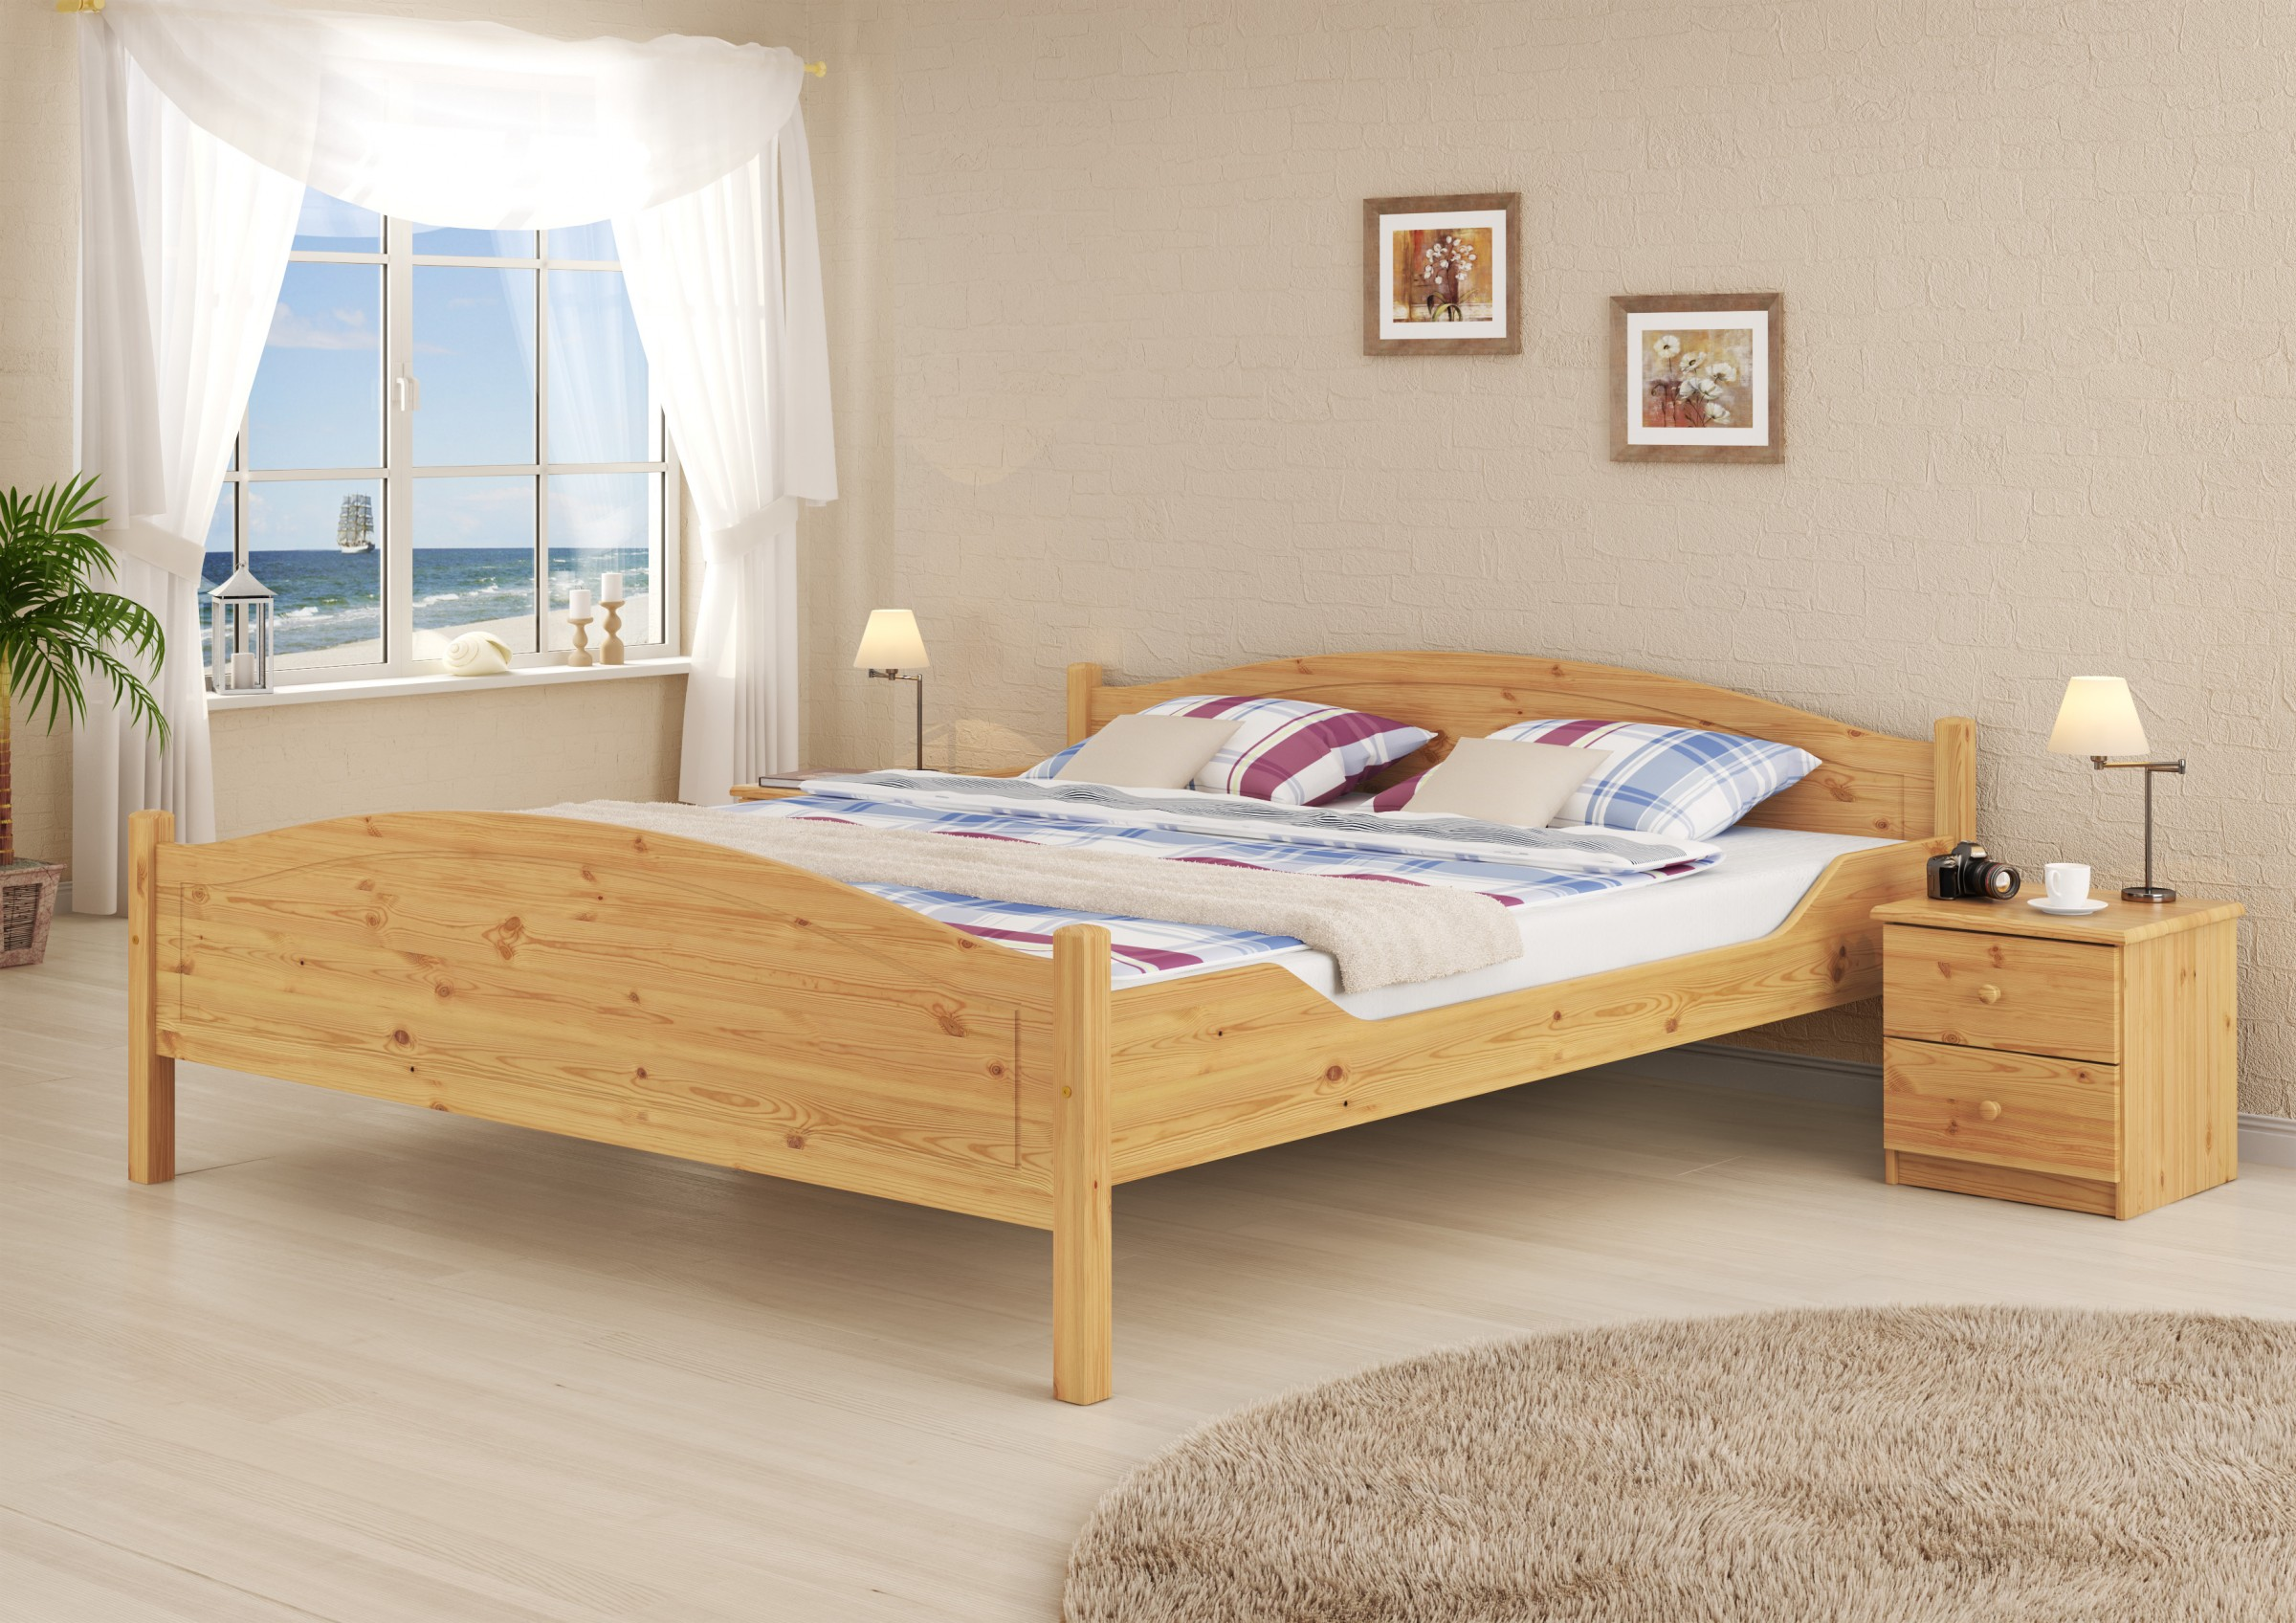 doppelbett ehebett kiefer natur massiv kingsizebett 200x200 rollrost ebay. Black Bedroom Furniture Sets. Home Design Ideas